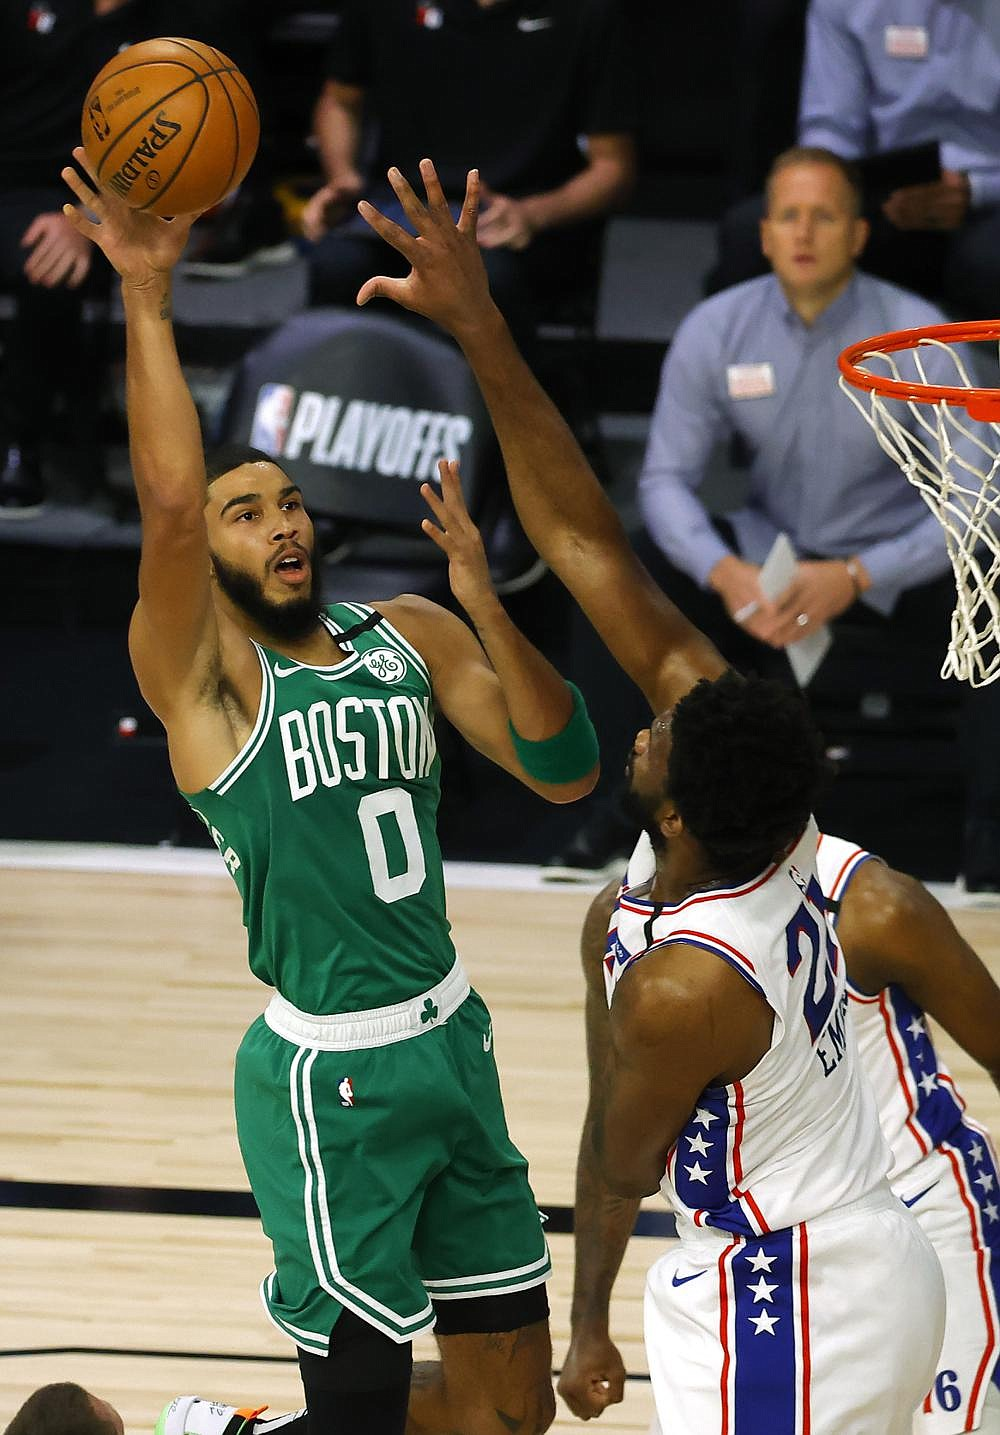 Jayson Tatum (left) of the Boston Celtics shoots over Joel Embiid of the Philadelphia 76ers during the Celtics' victory in the NBA Eastern Conference playoffs Wednesday night at Lake Buena Vista, Fla. Tatum made 8 of 12 three-pointers and led the Celtics with 33 points. (AP/Kevin C. Cox)